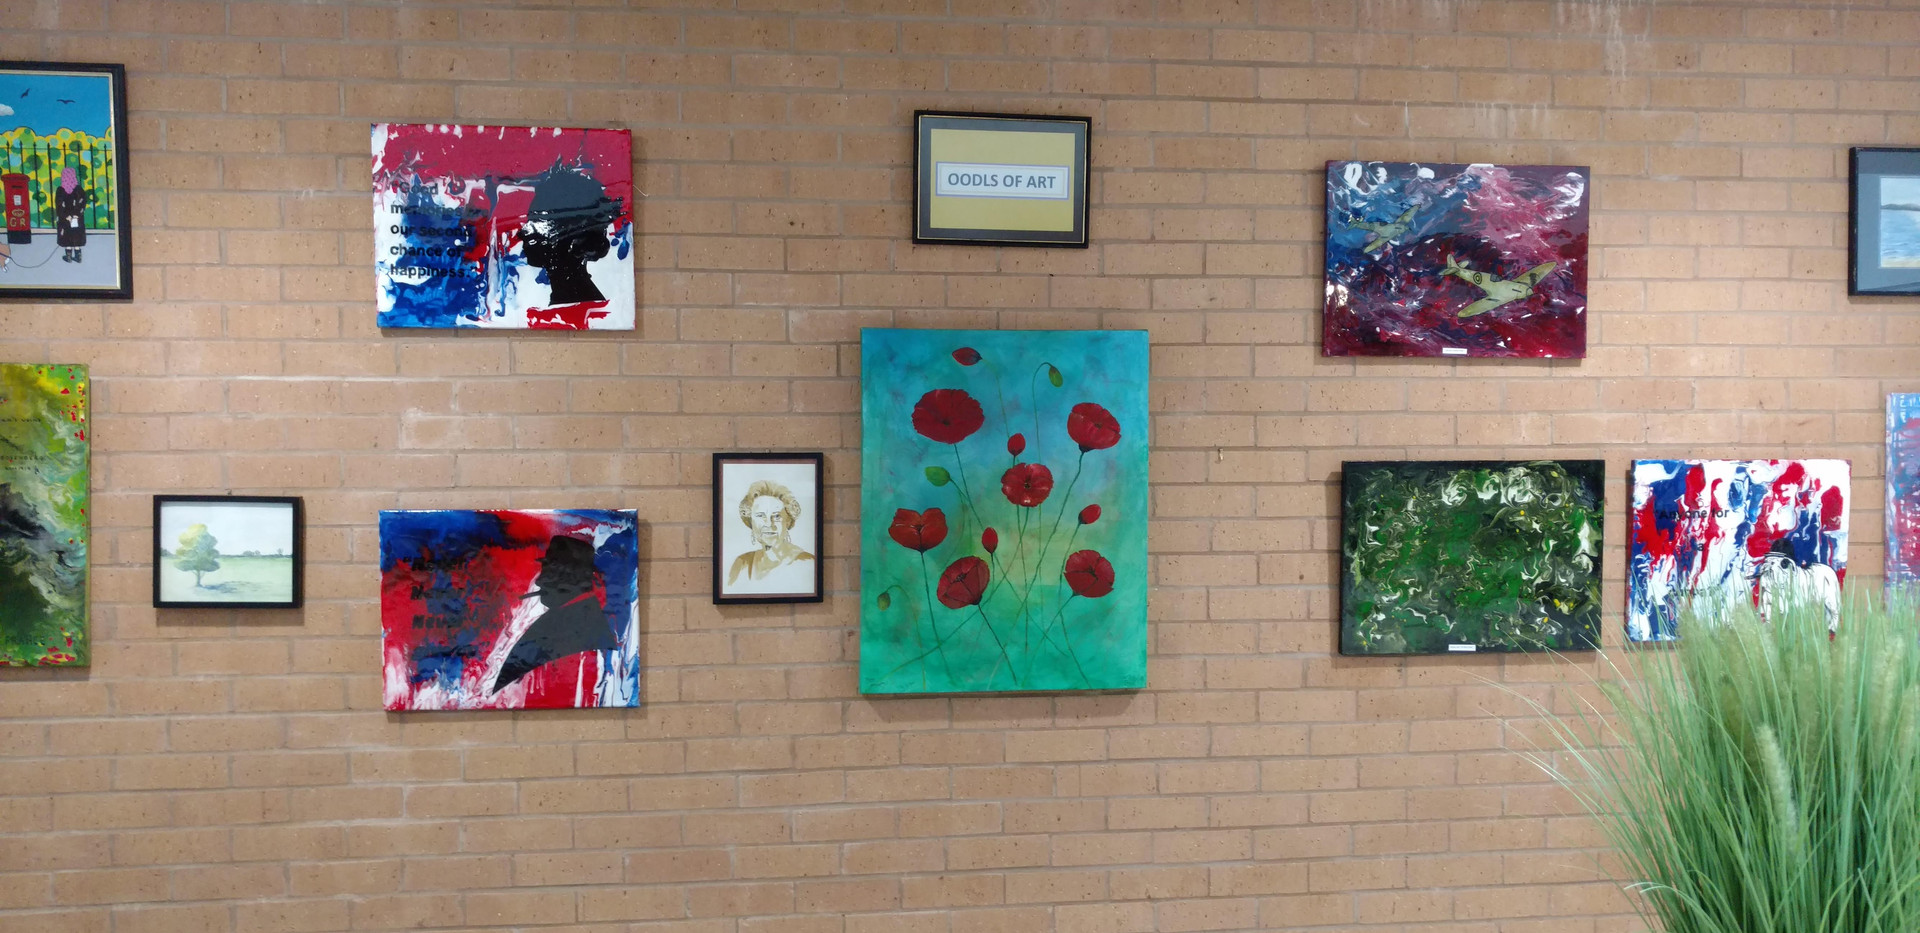 Photo from lynwoods previous exhibition